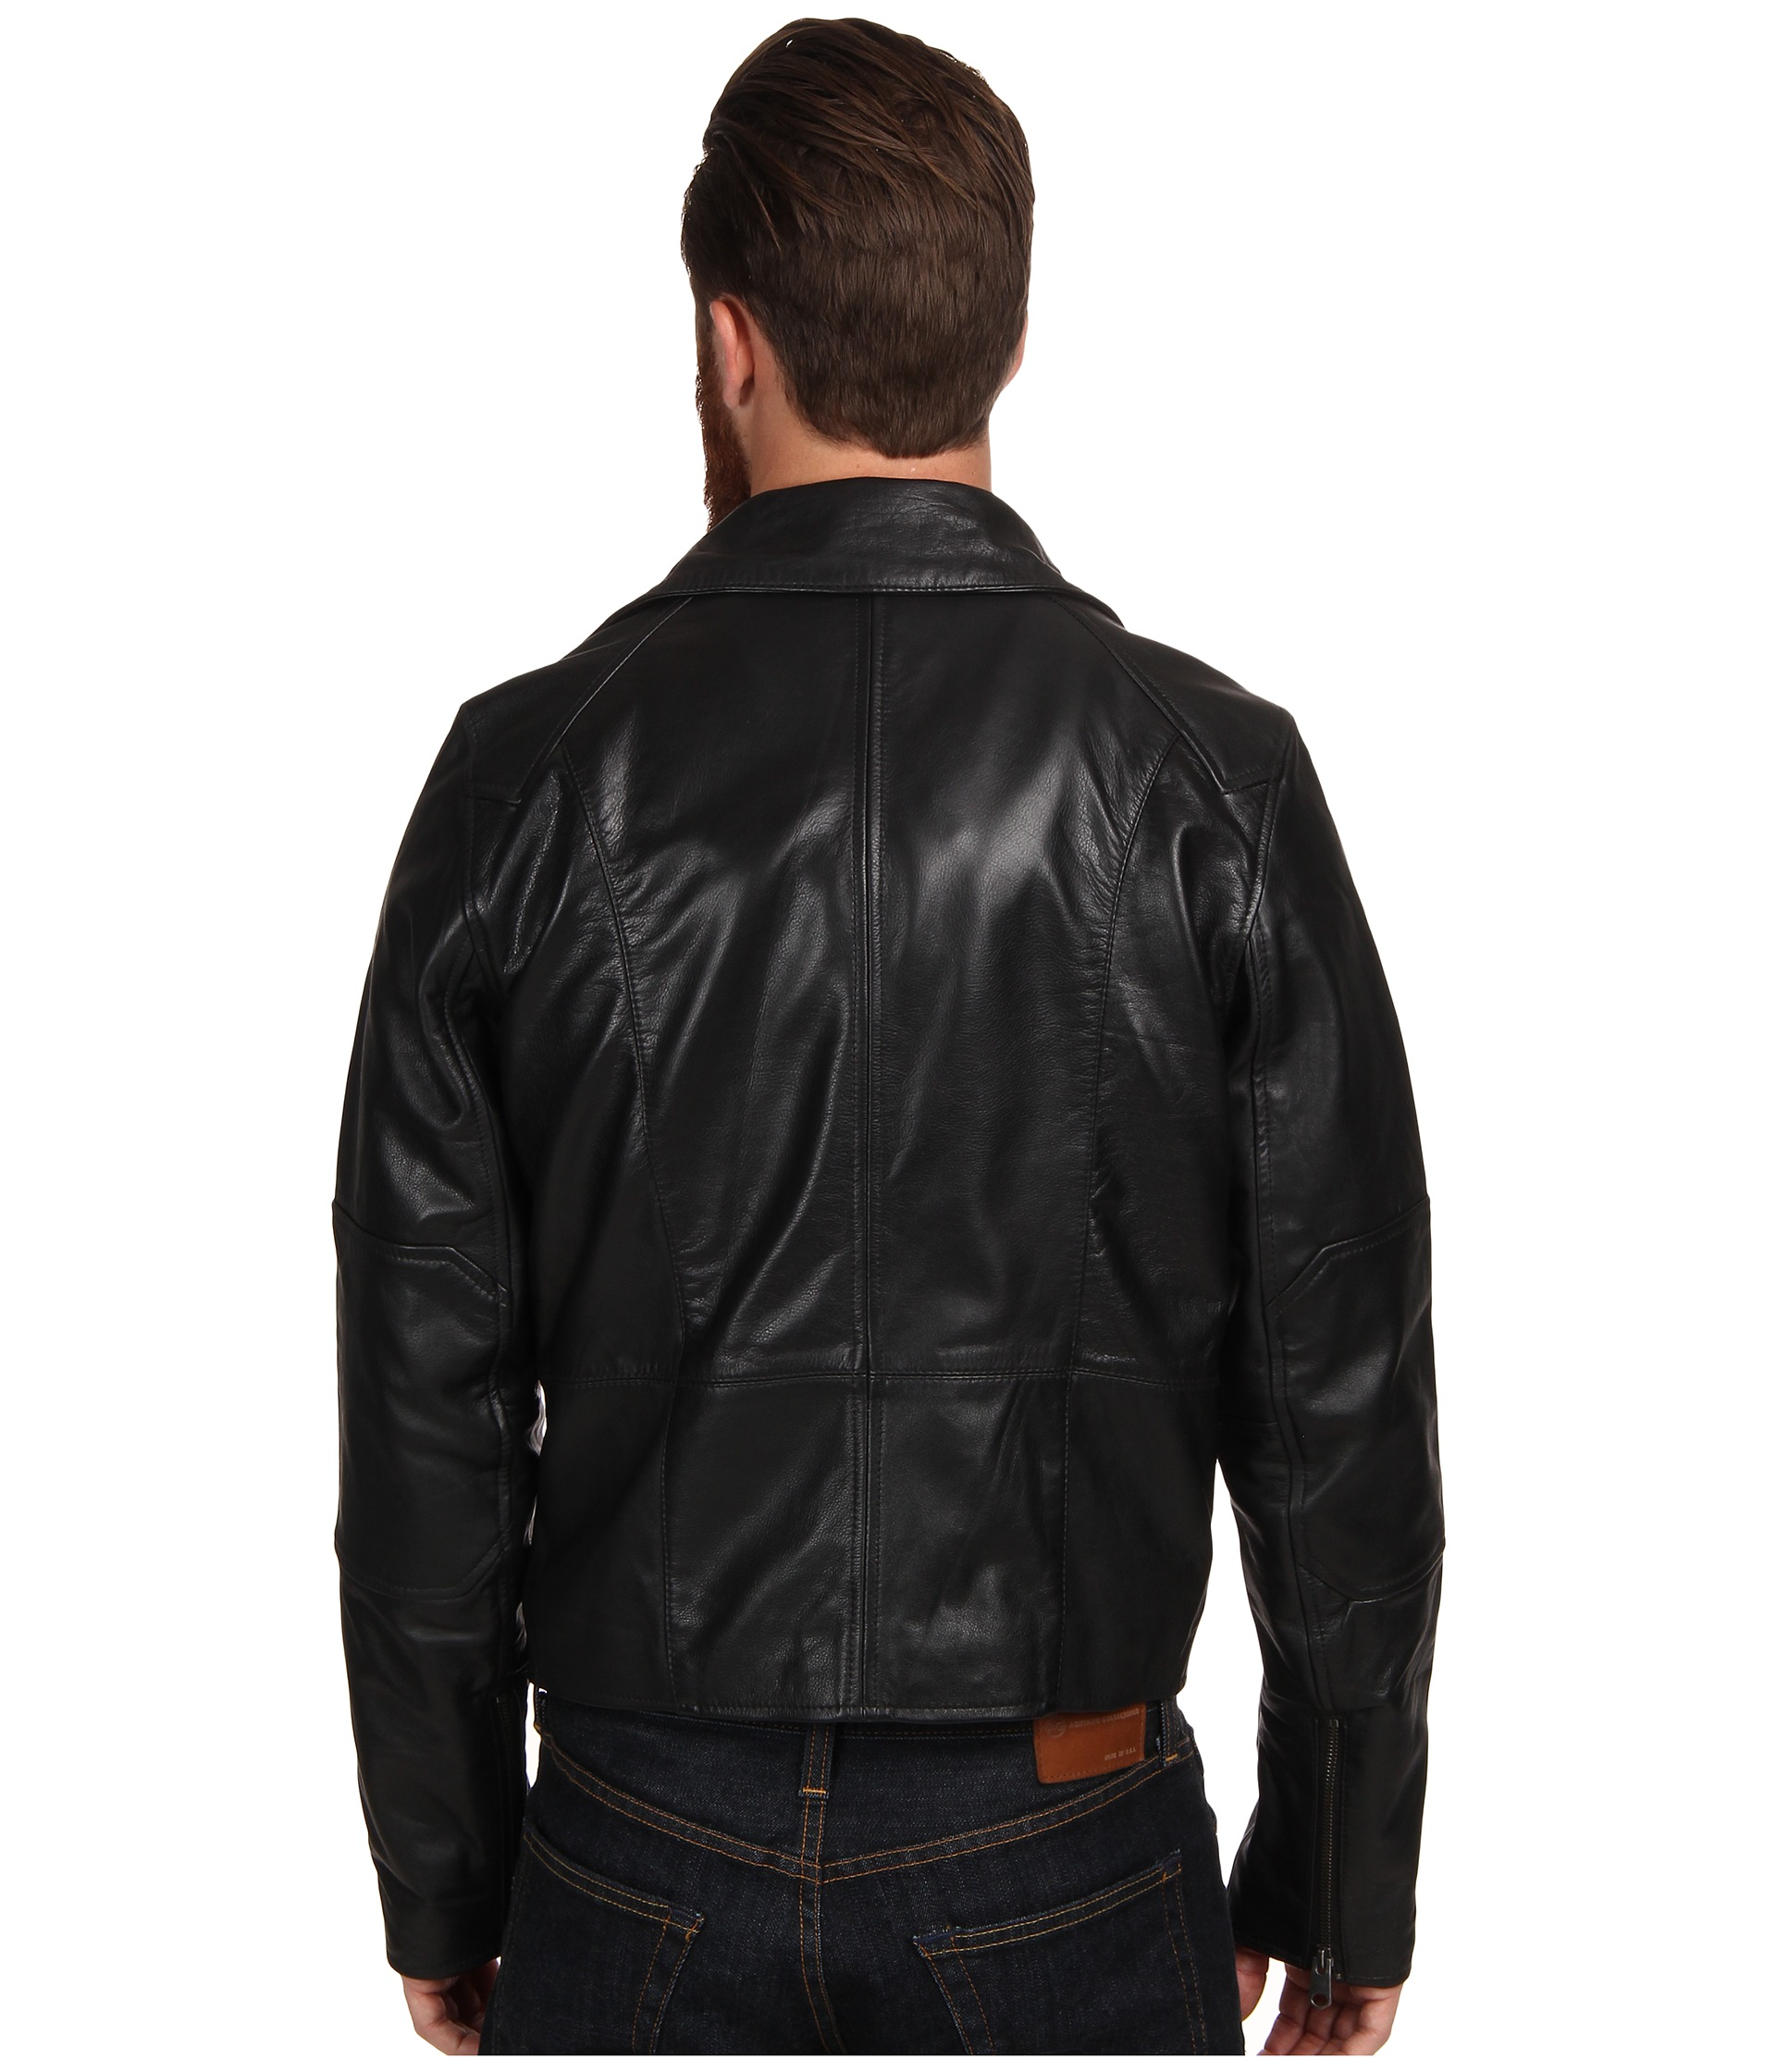 g star camcord perfecto leather jacket shipped free at. Black Bedroom Furniture Sets. Home Design Ideas